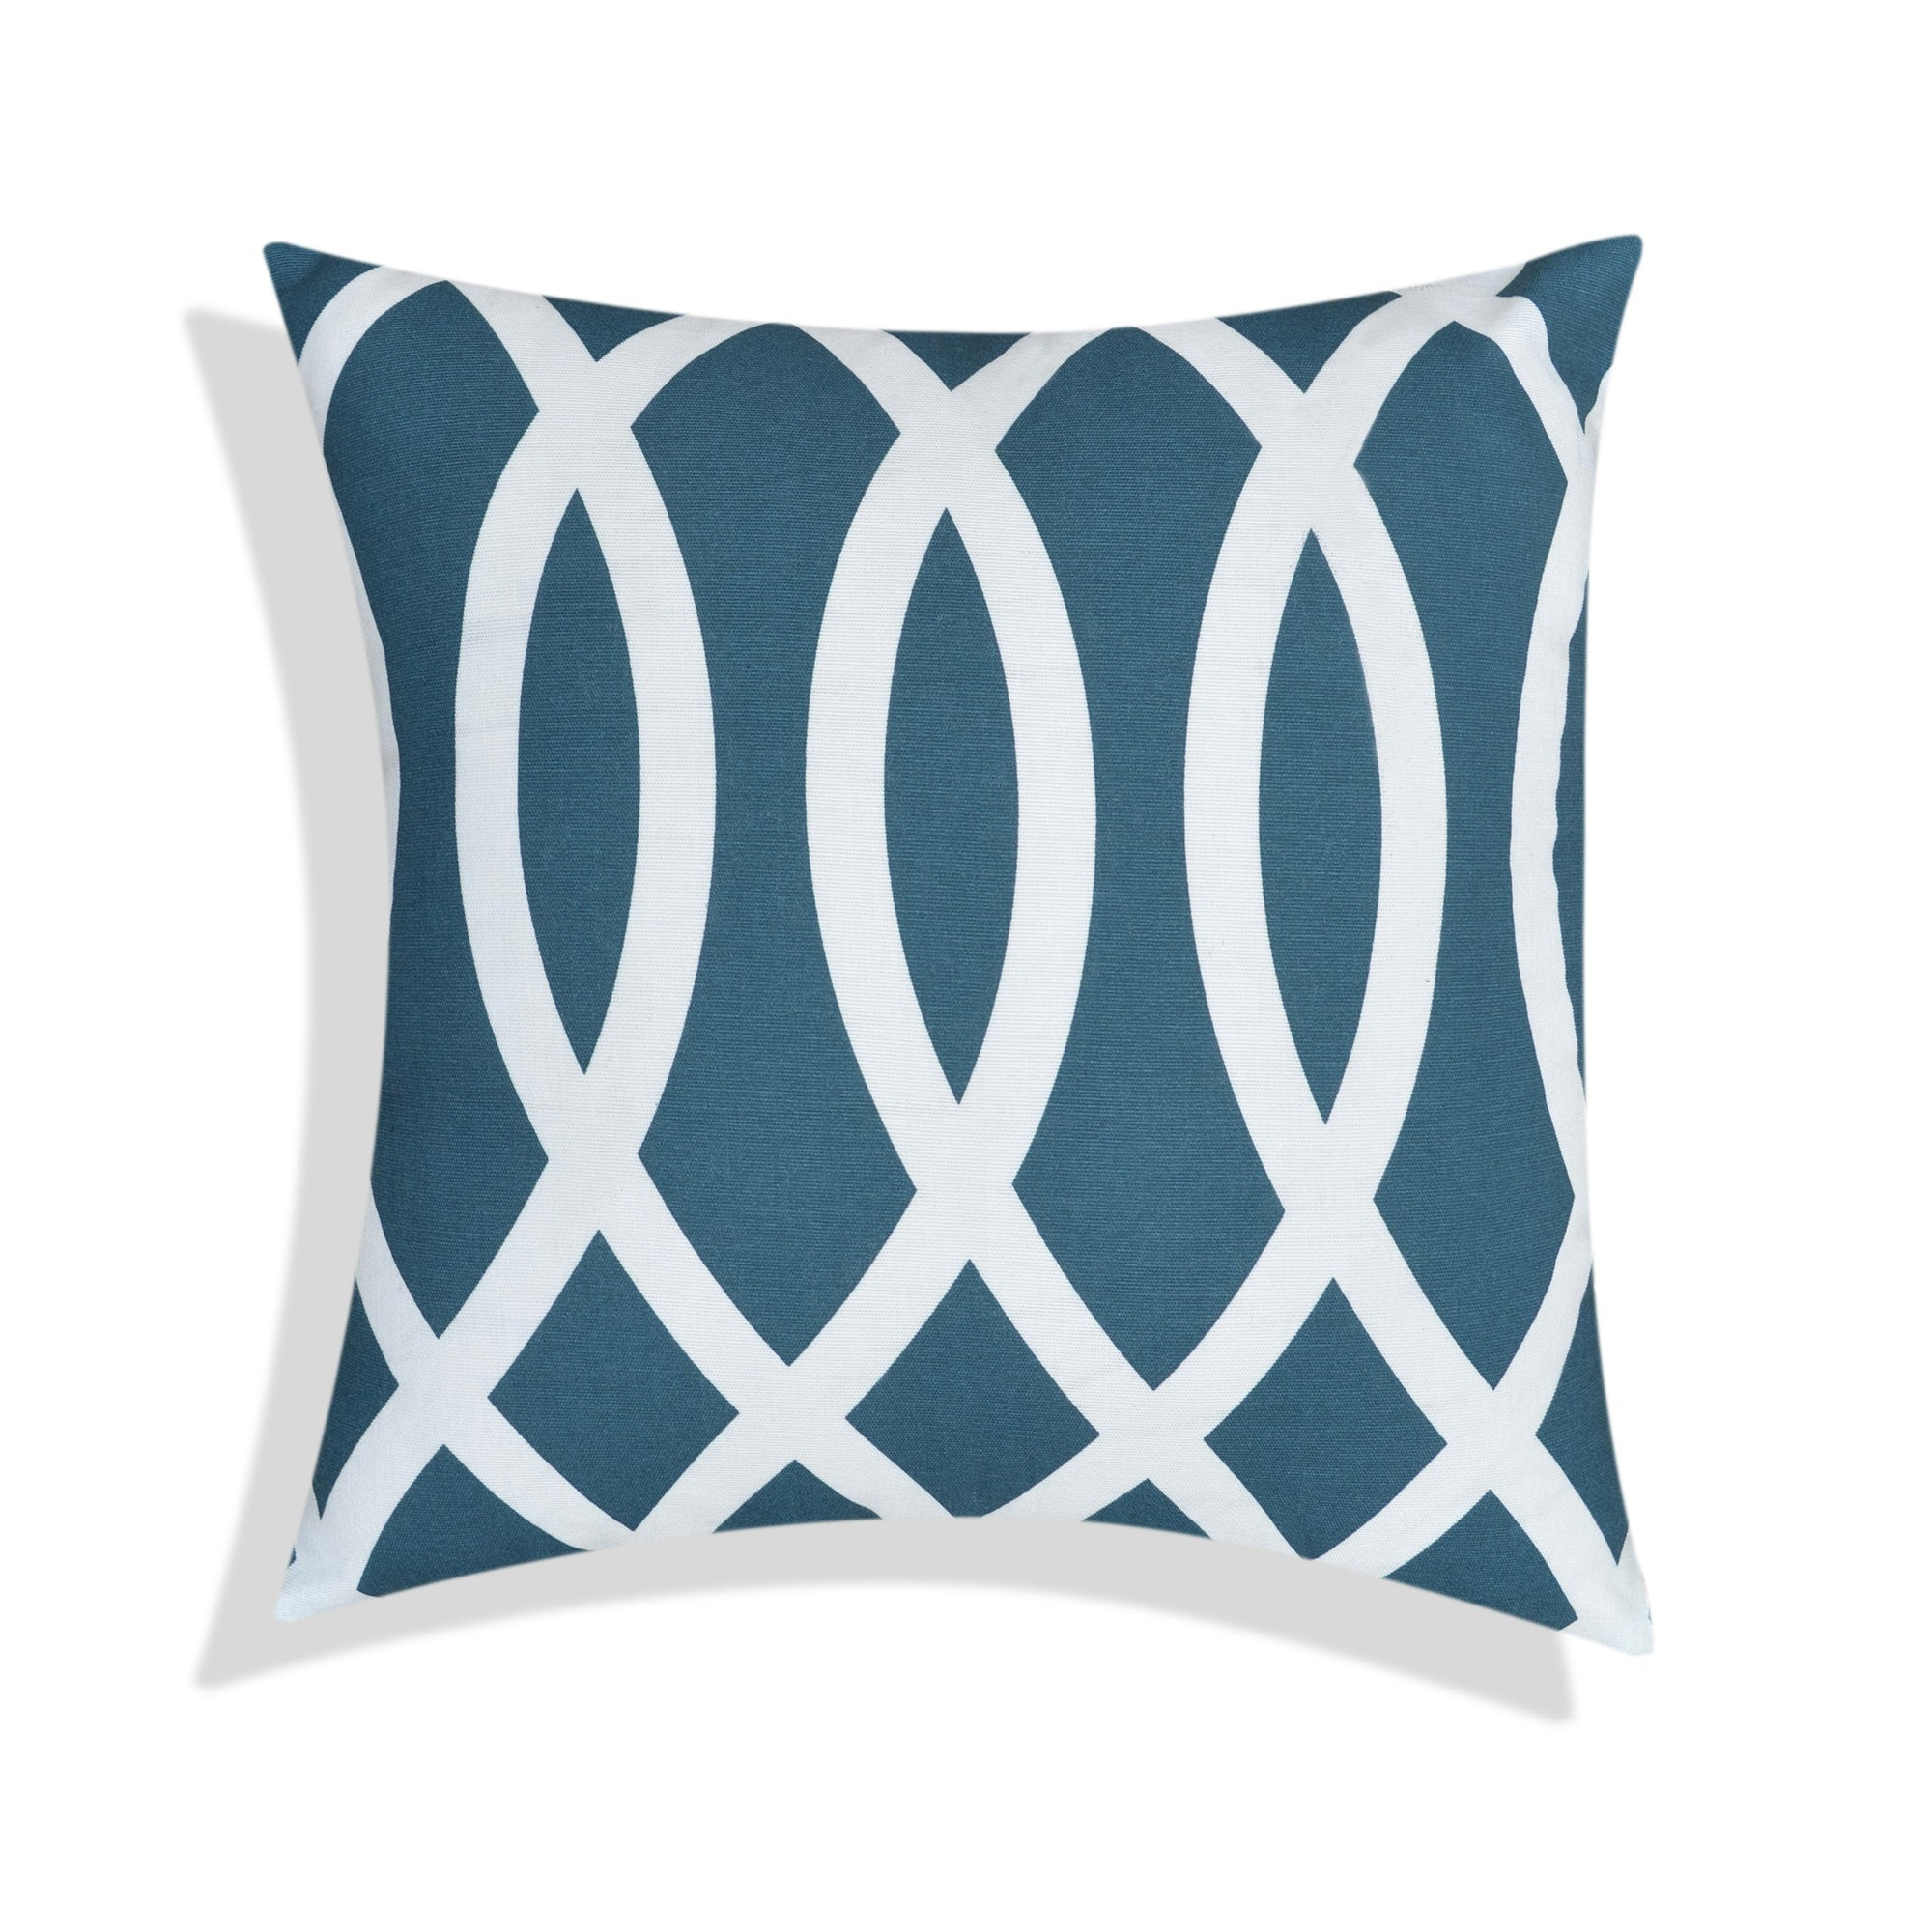 Wavy Green Cushion Cover